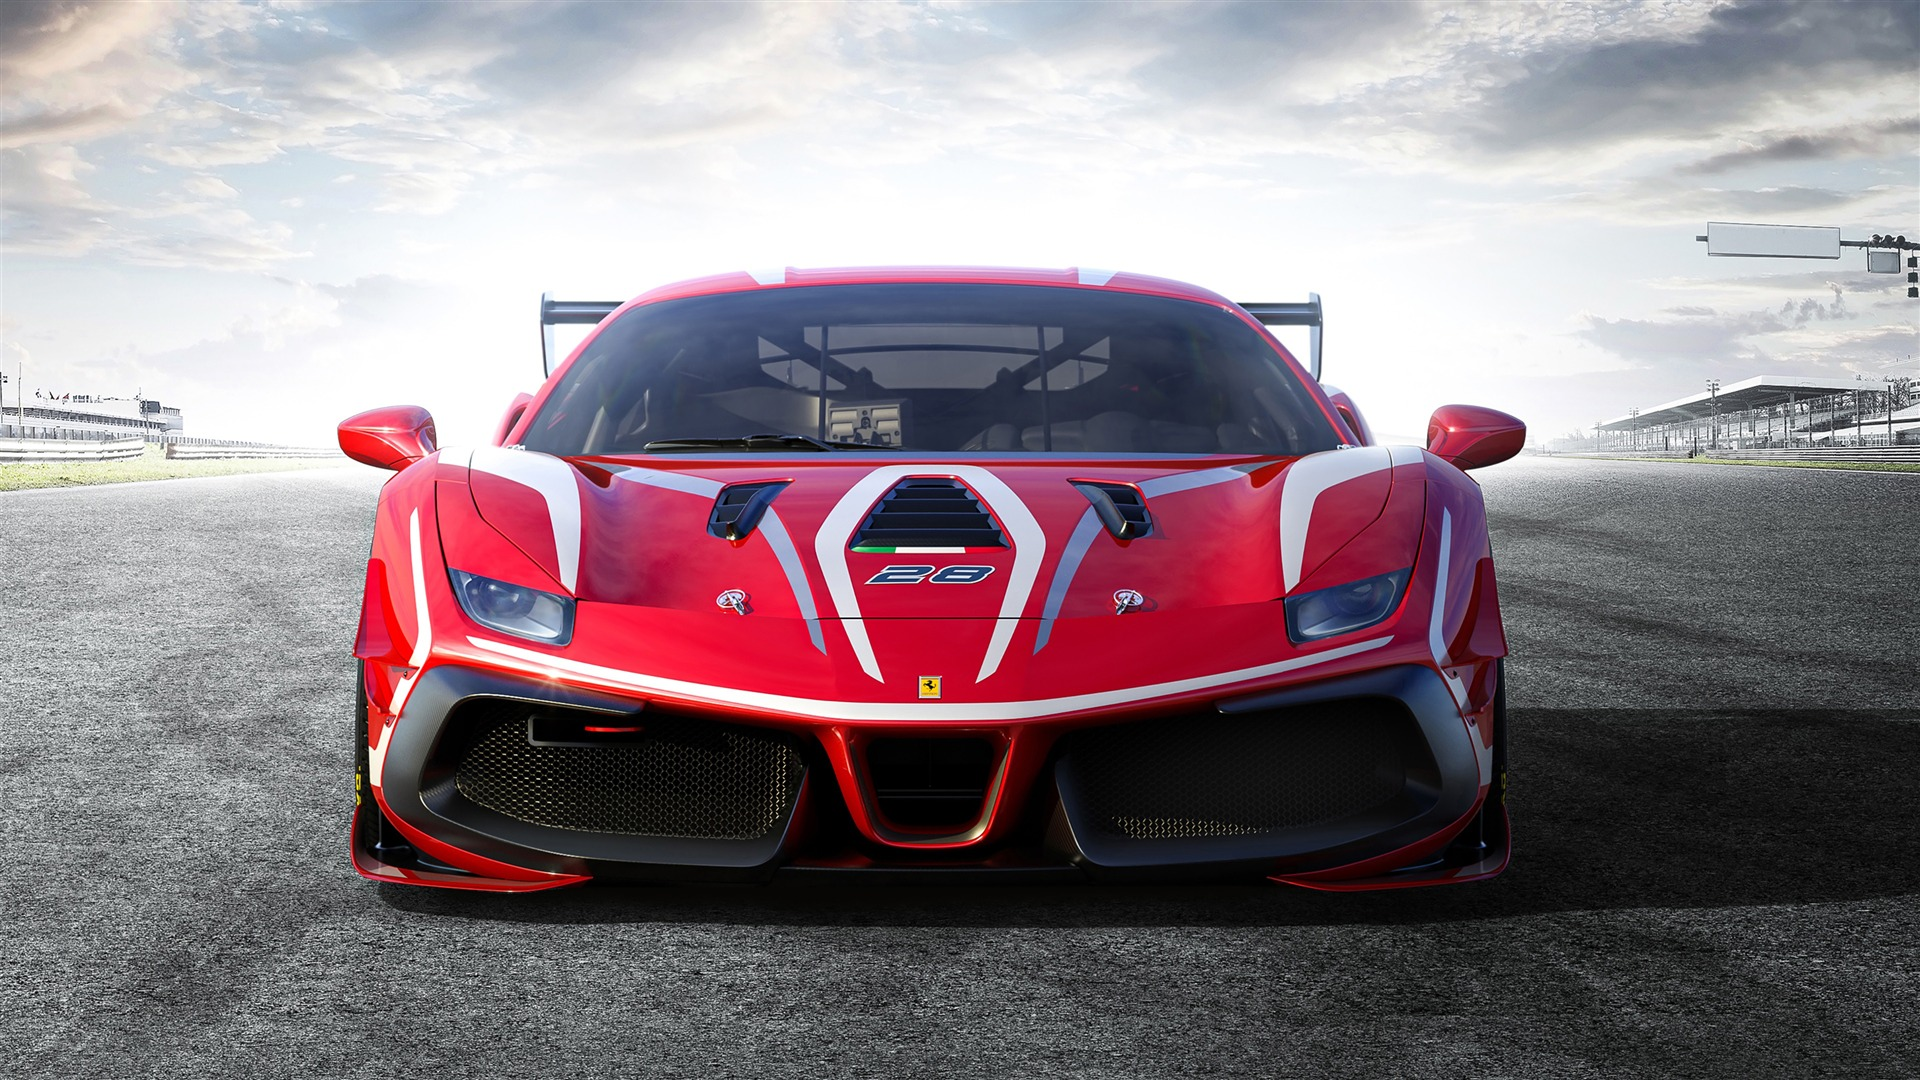 Ferrari 488 Challenge 2020 Supercar Photo 1920x1080